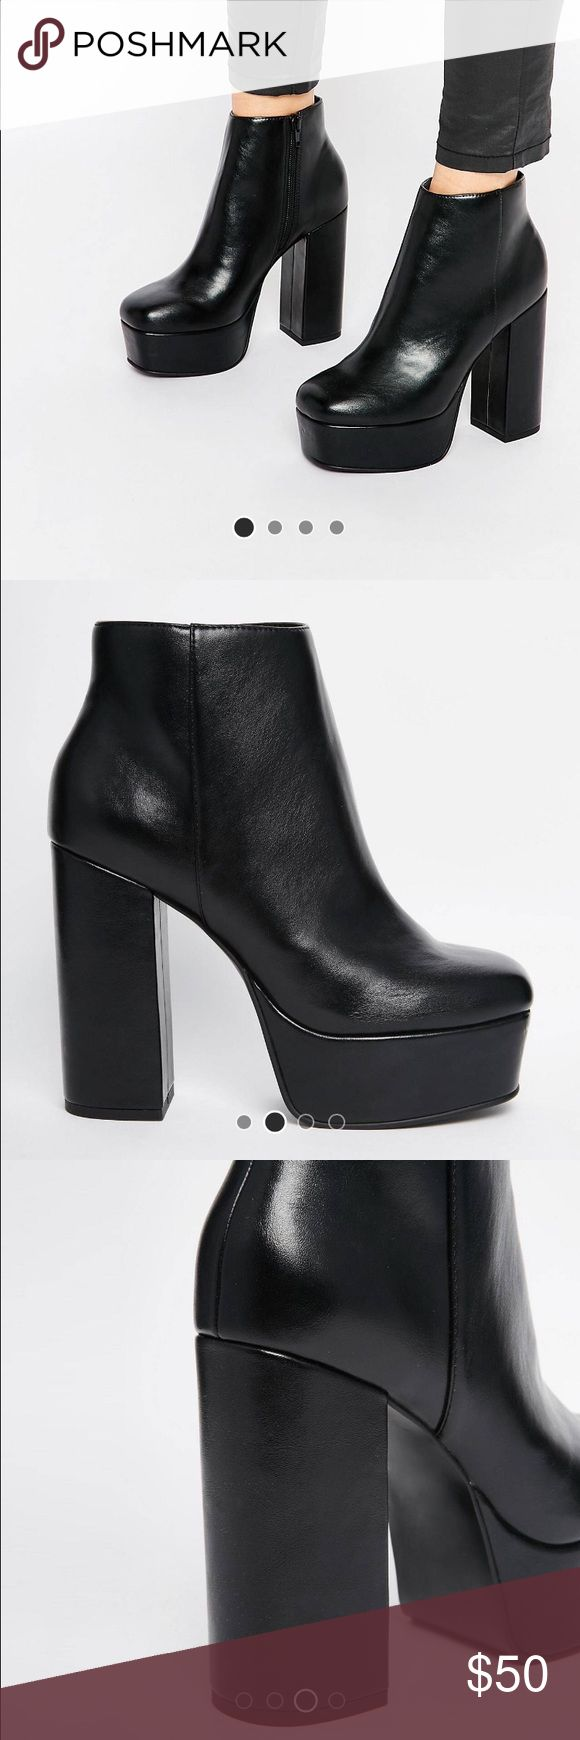 NWT in box ASOS ELLEN PLATFORM BOOT brand new in box. Too big on me and missed the return window ASOS Shoes Platforms